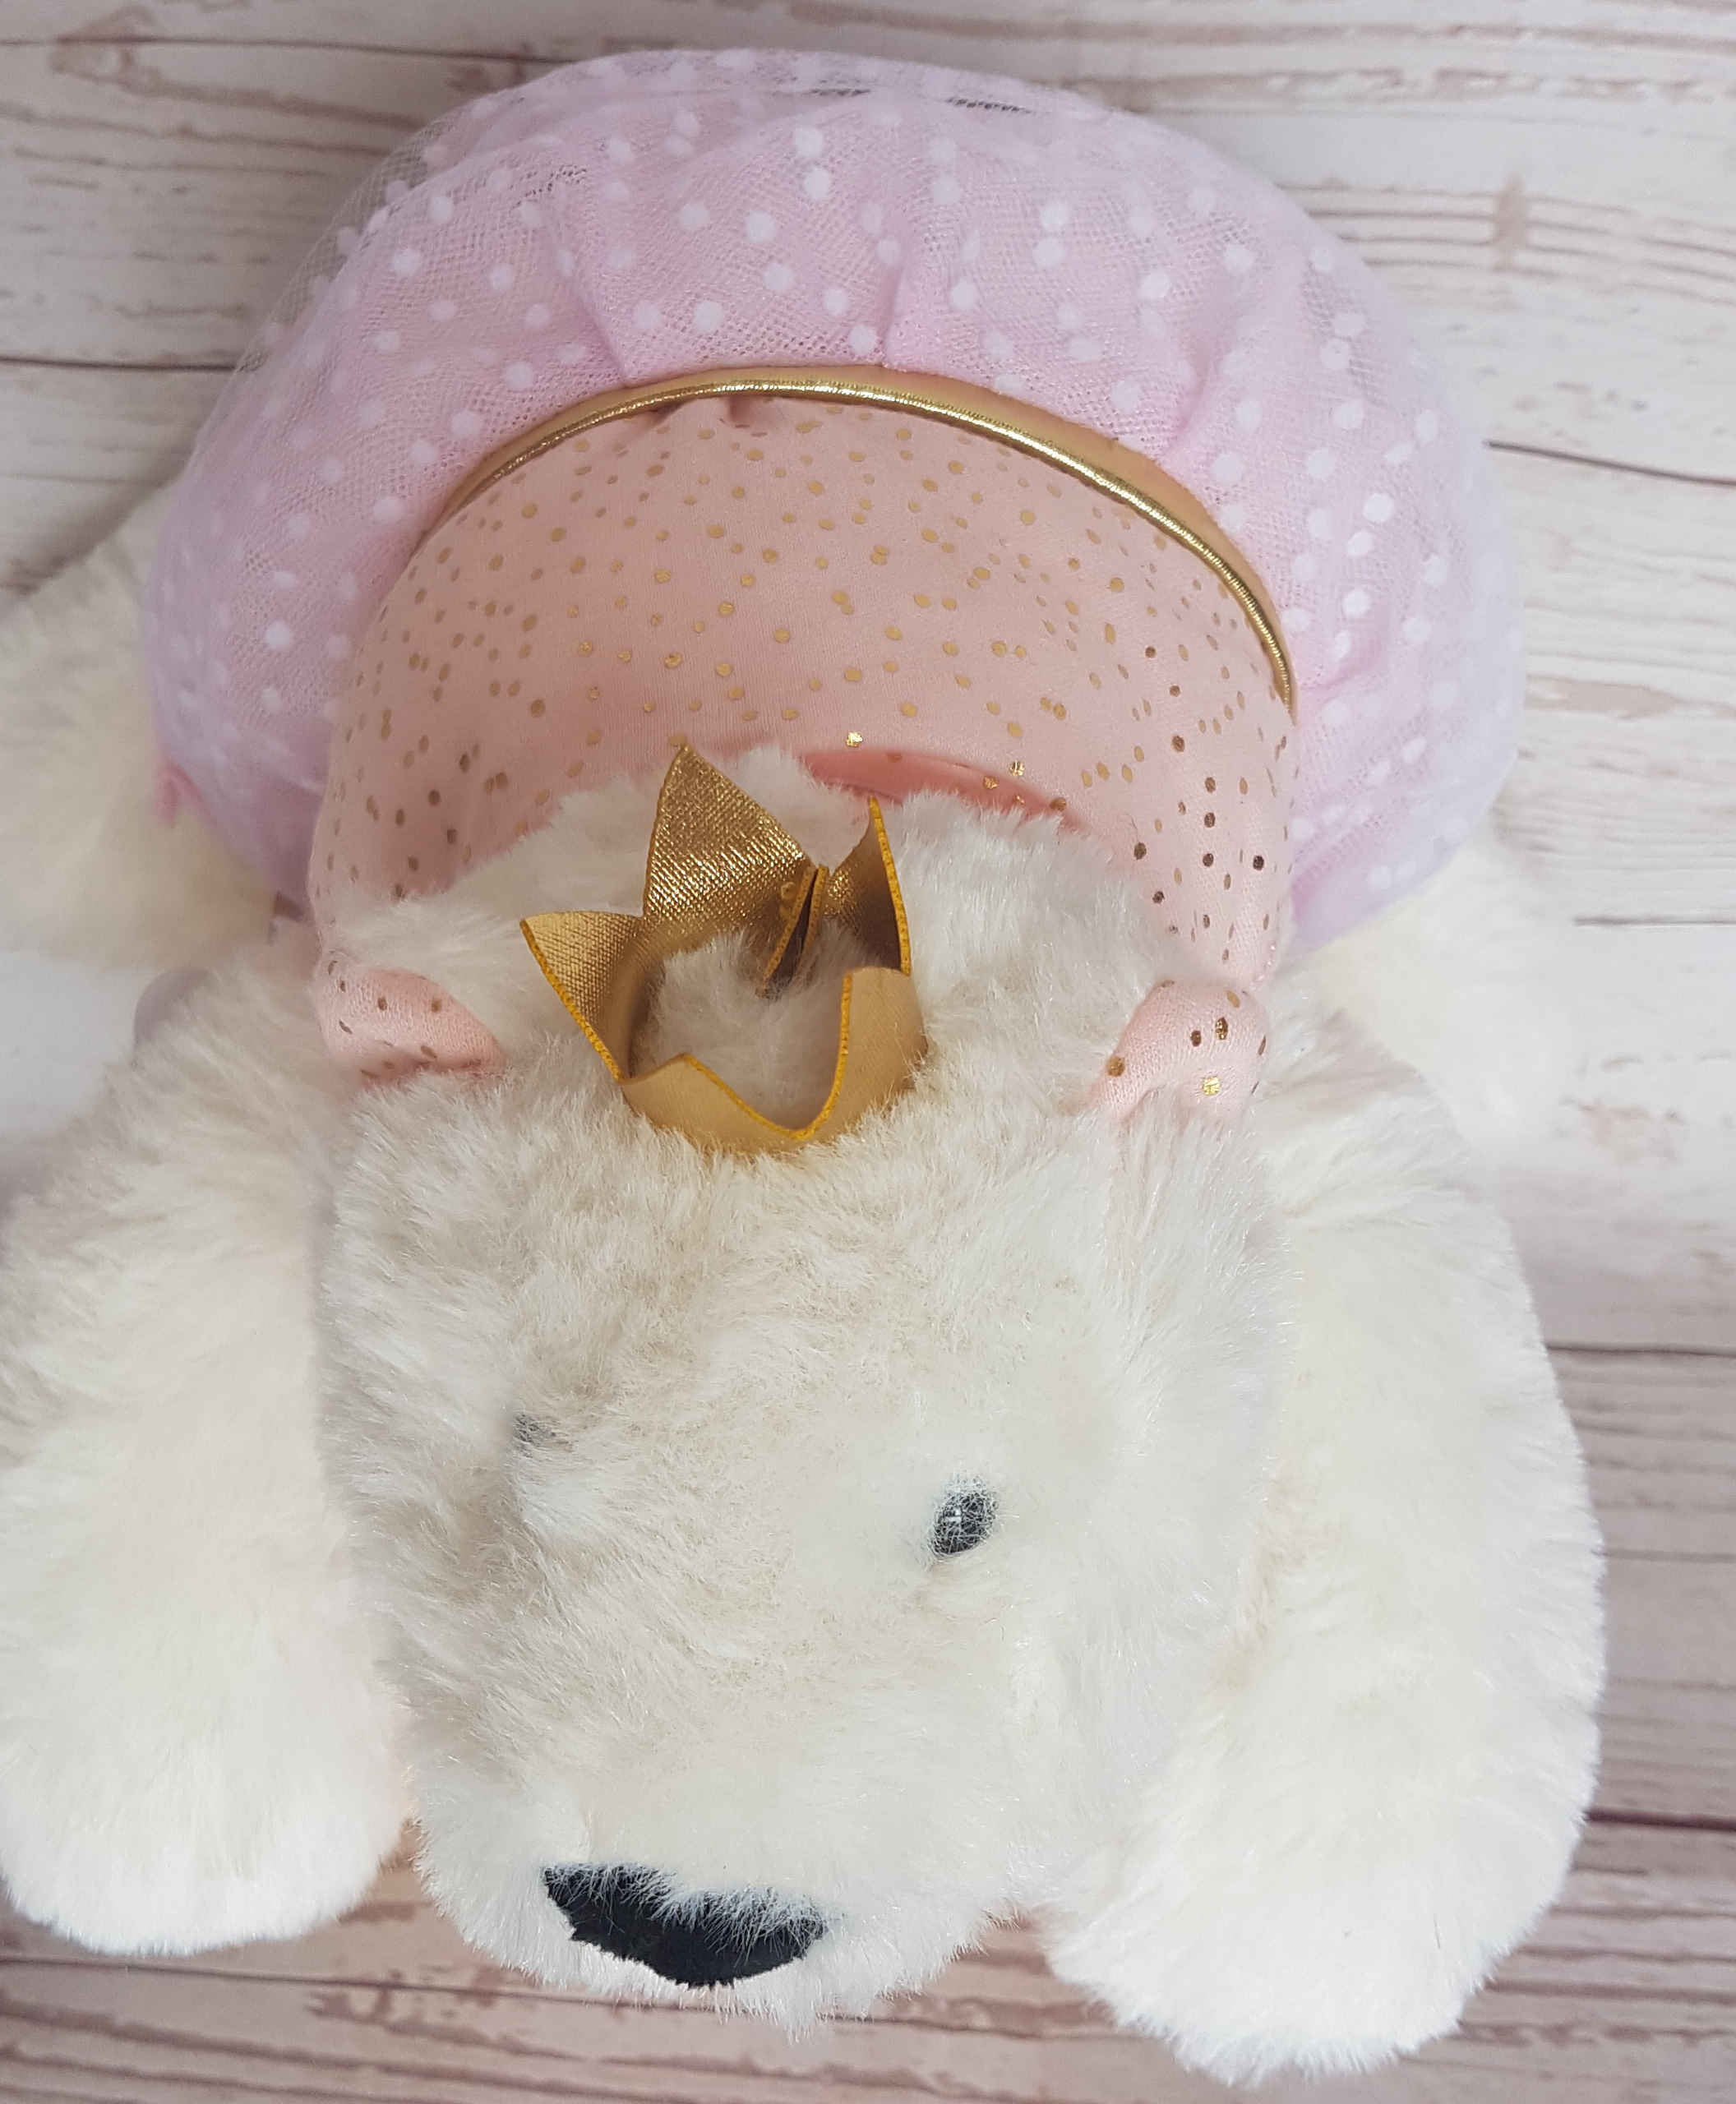 Confetti, would look beautiful on any little princess's bed.  This white polar bear, adorned with its crown, and tutu.